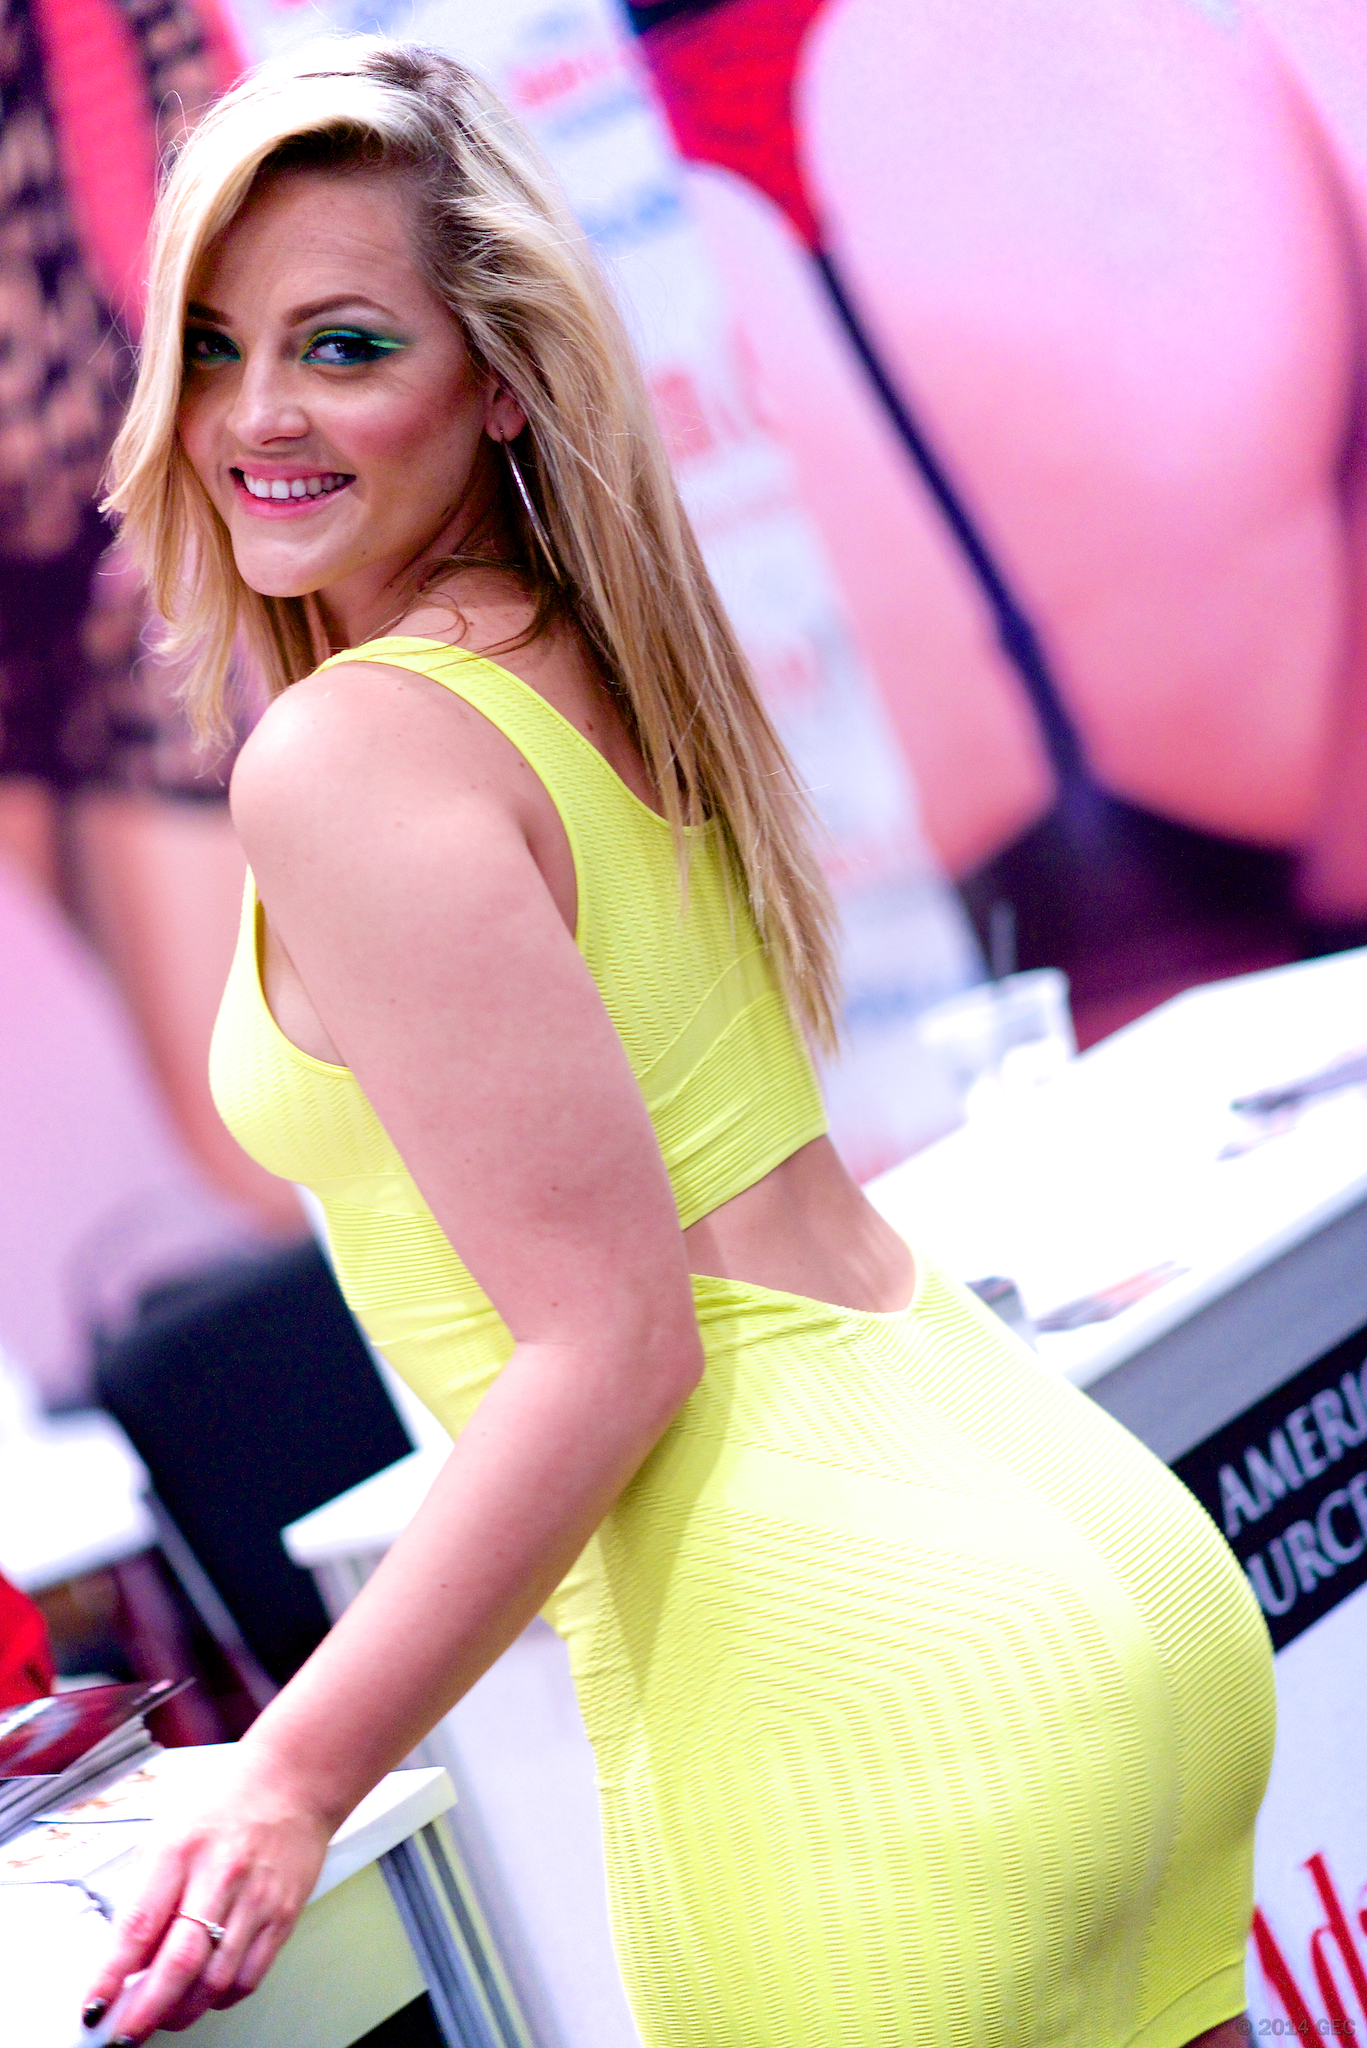 Filealexis Texas At The 2014 Avn Adult Entertainment Expo 12228559924 Jpg